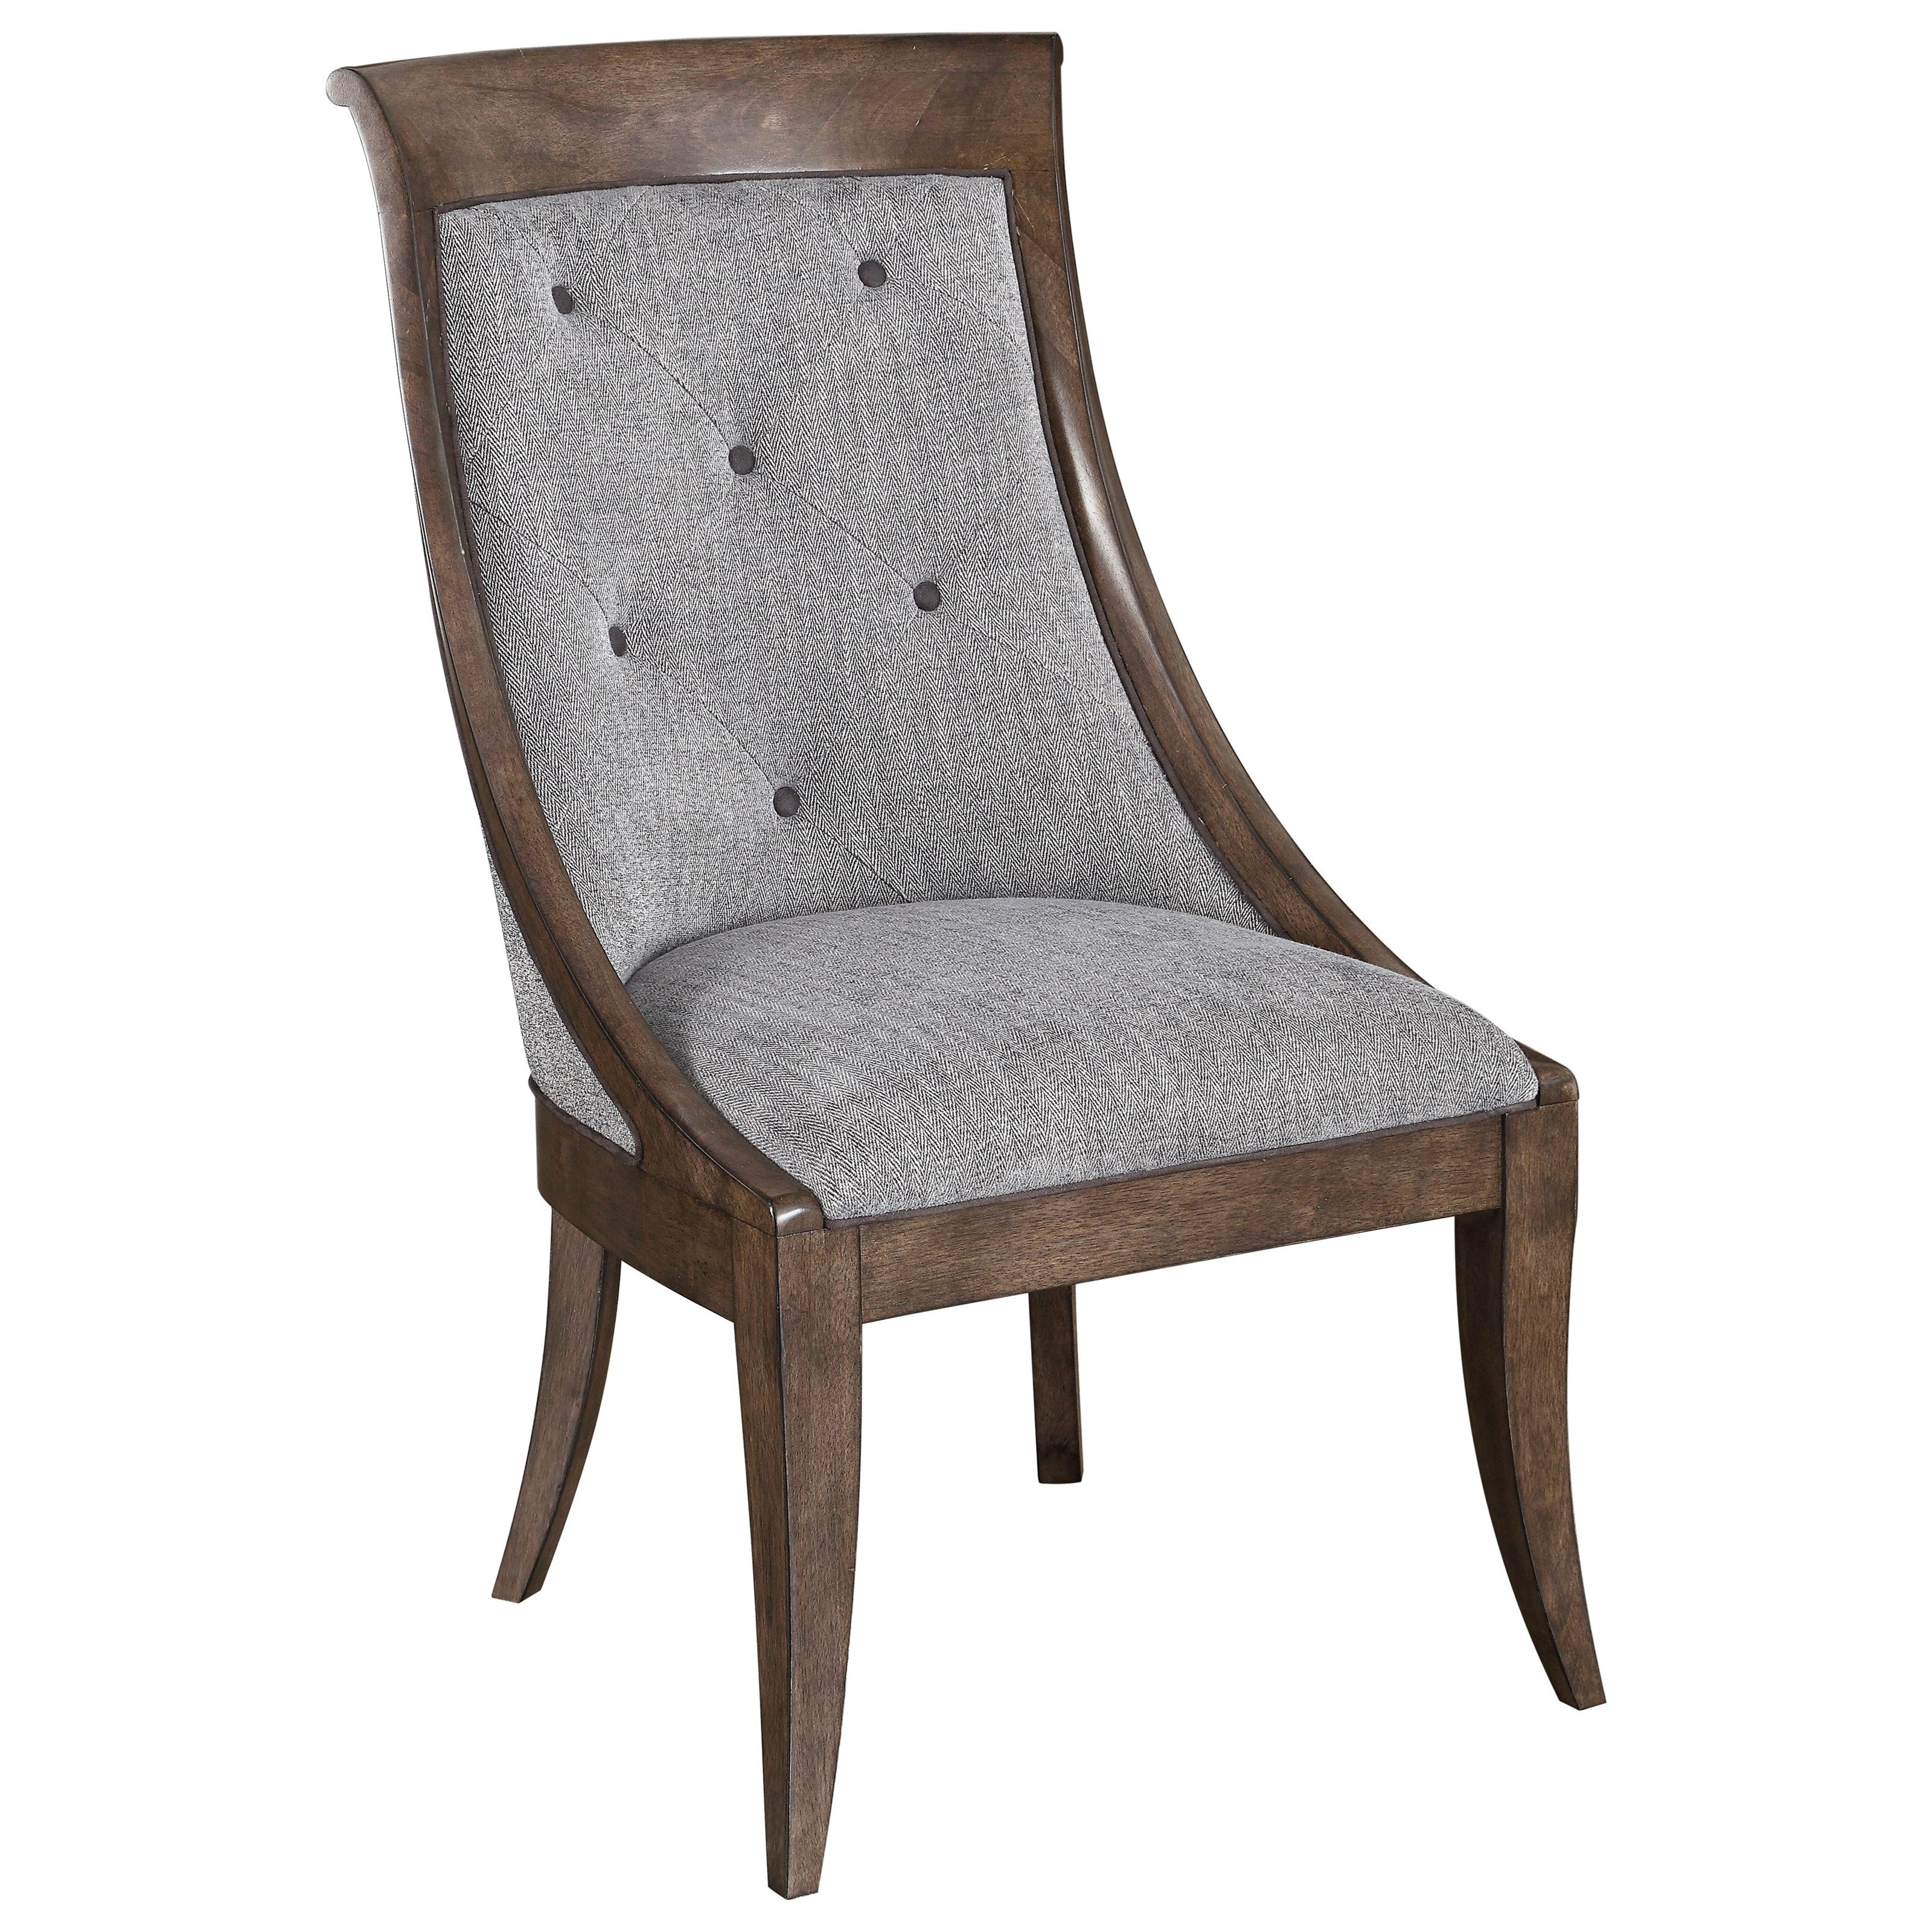 Landmark Tufted Sling Chair by A.R.T. Furniture Inc at Home Collections Furniture